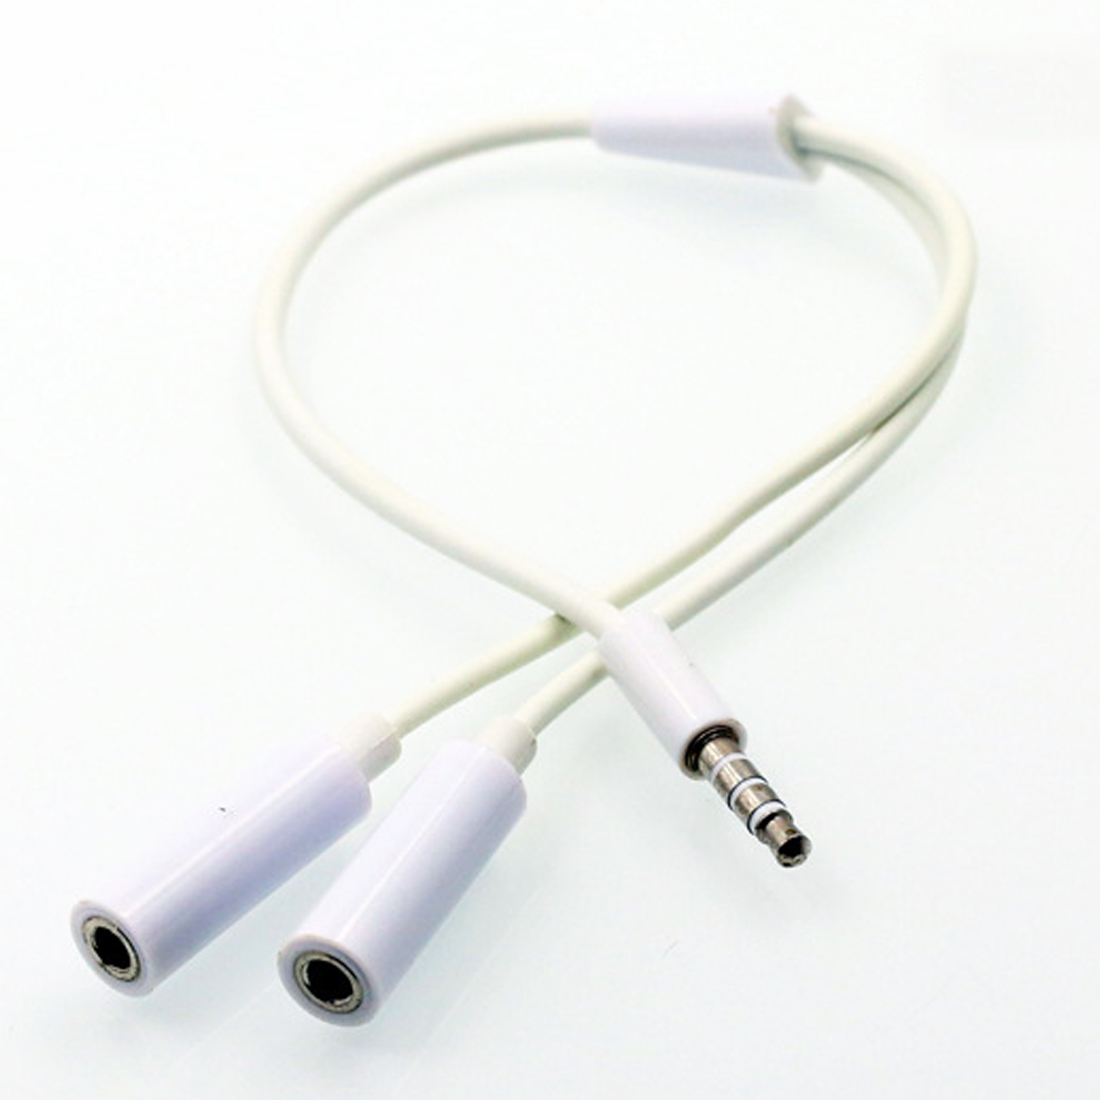 Mini Jack Splitter Aliexpress Buy Y Splitter Earphone Audio Cable 3 5 Mm Stereo Mini Jack 1 Female To 2 Male From Reliable Connectors Suppliers On Hardware Grocer